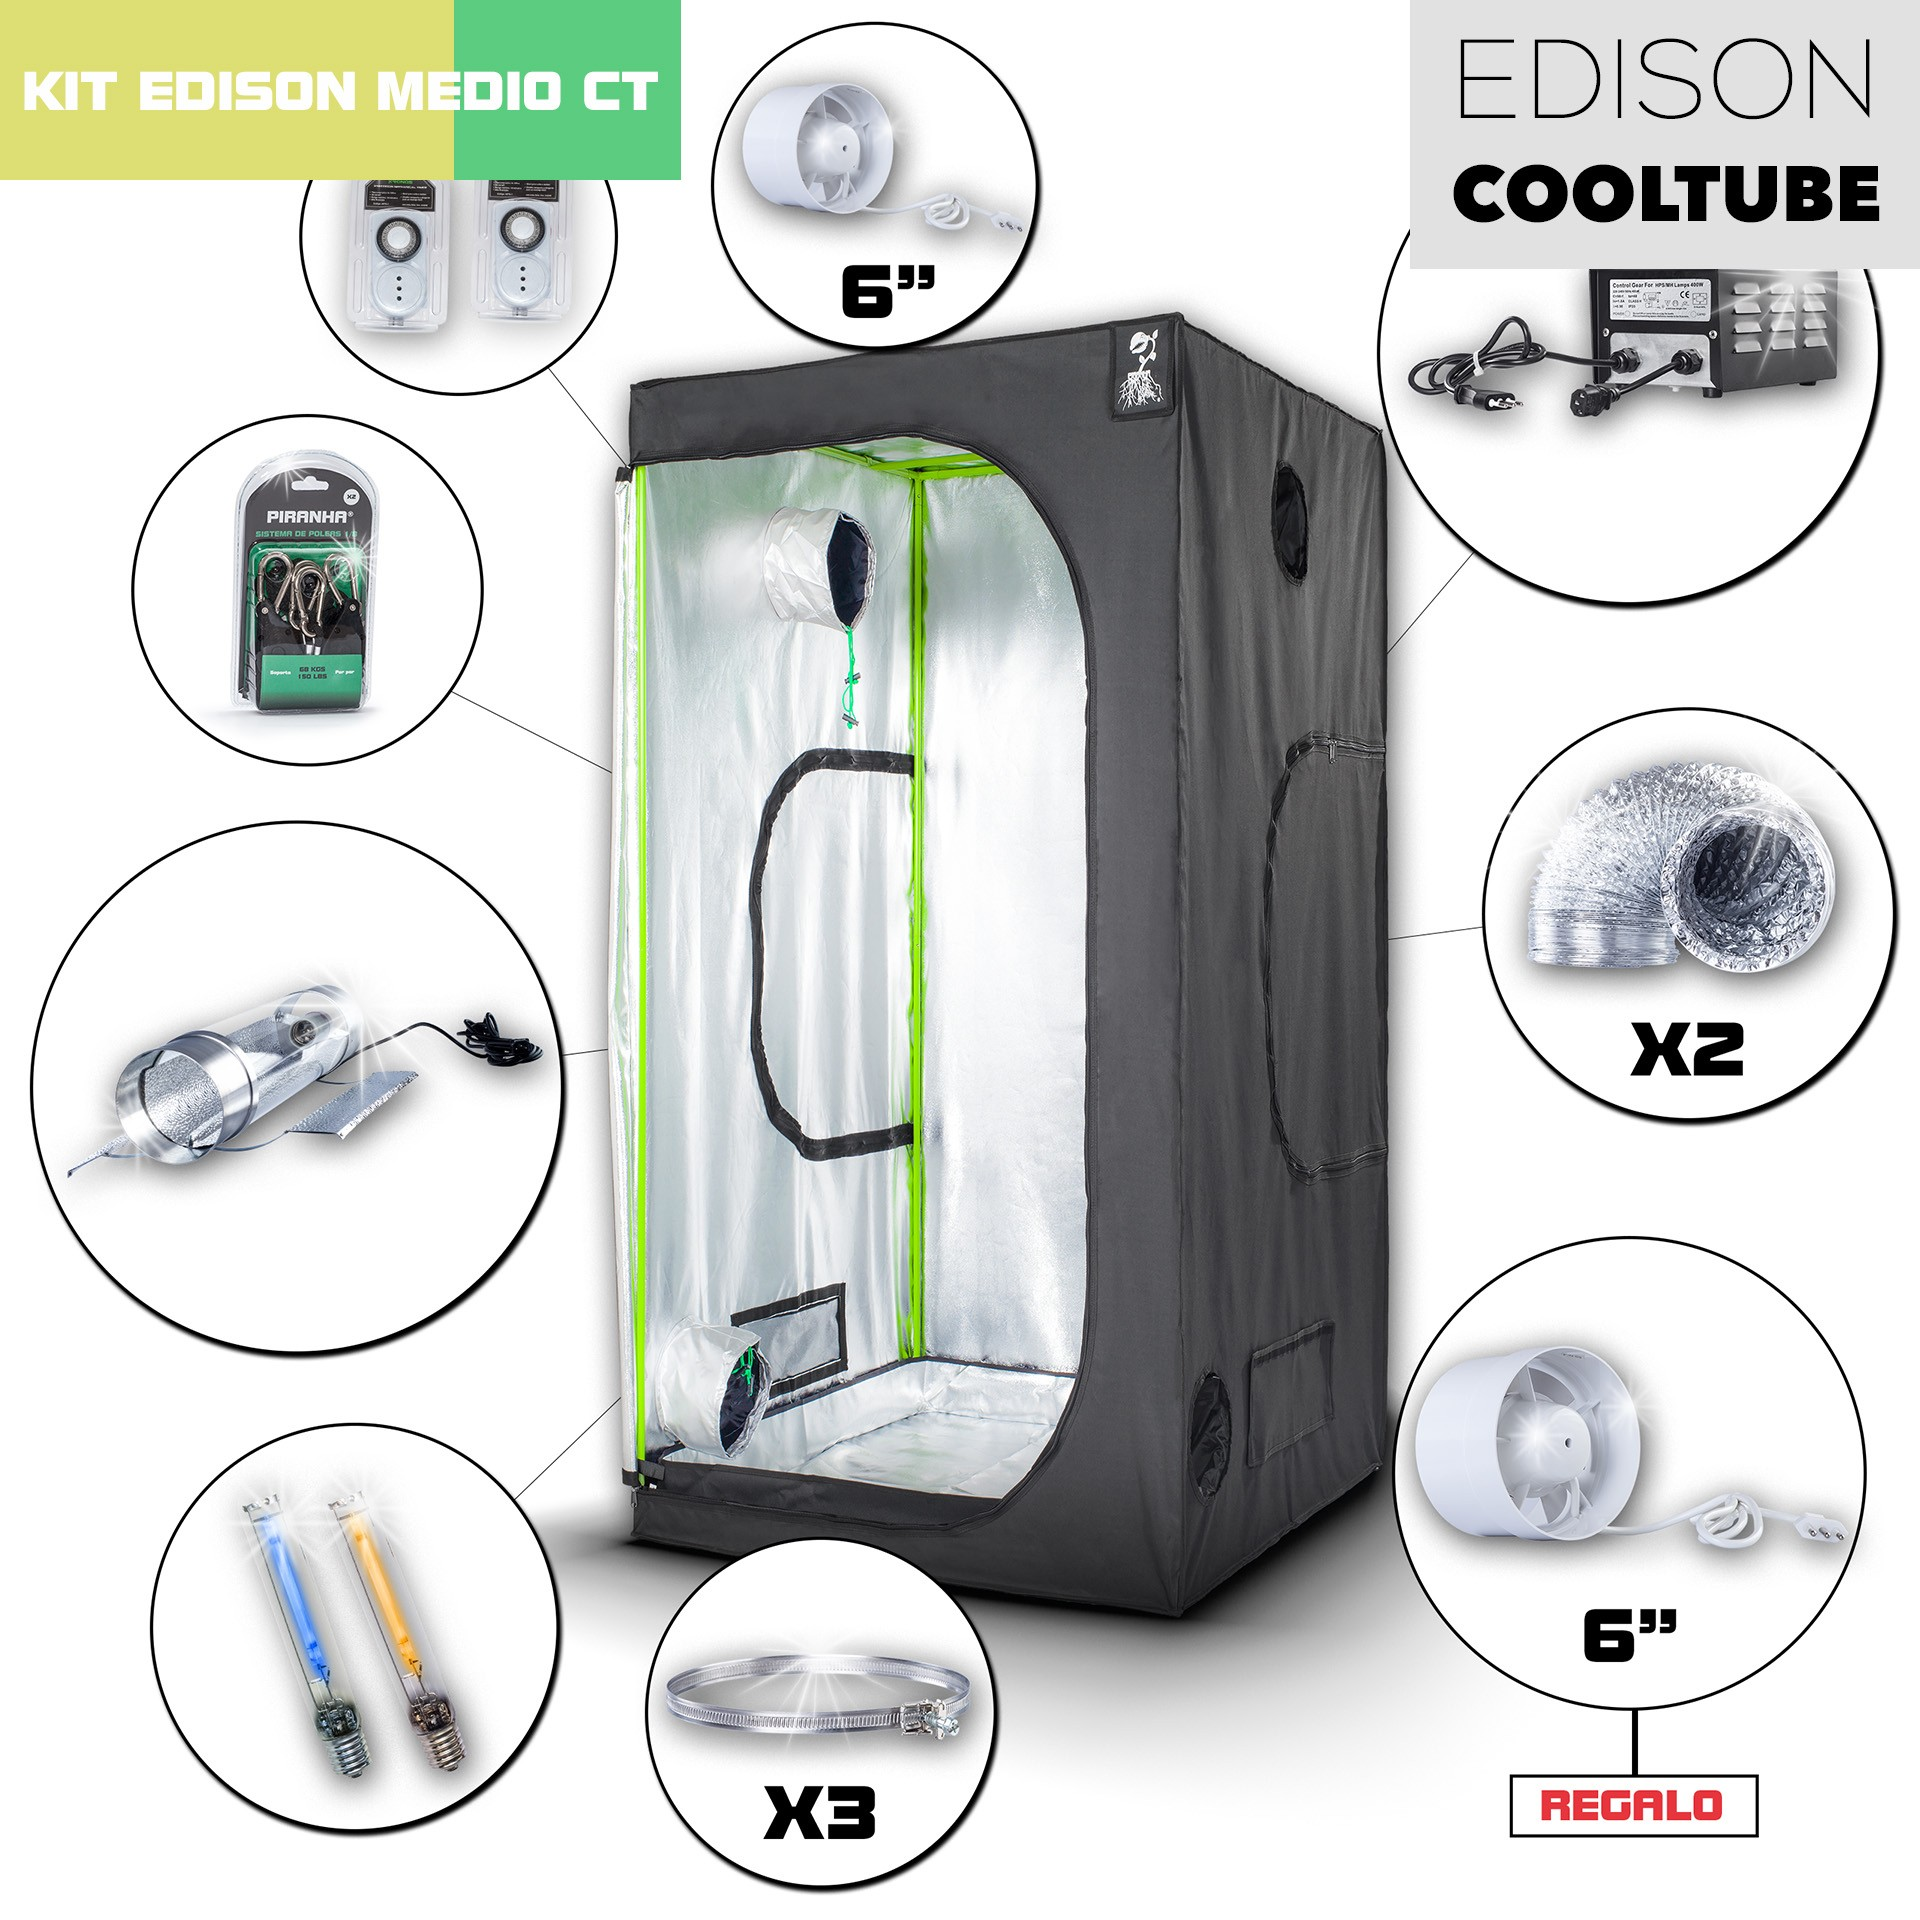 Kit Edison CoolTube 100 Medio 400W